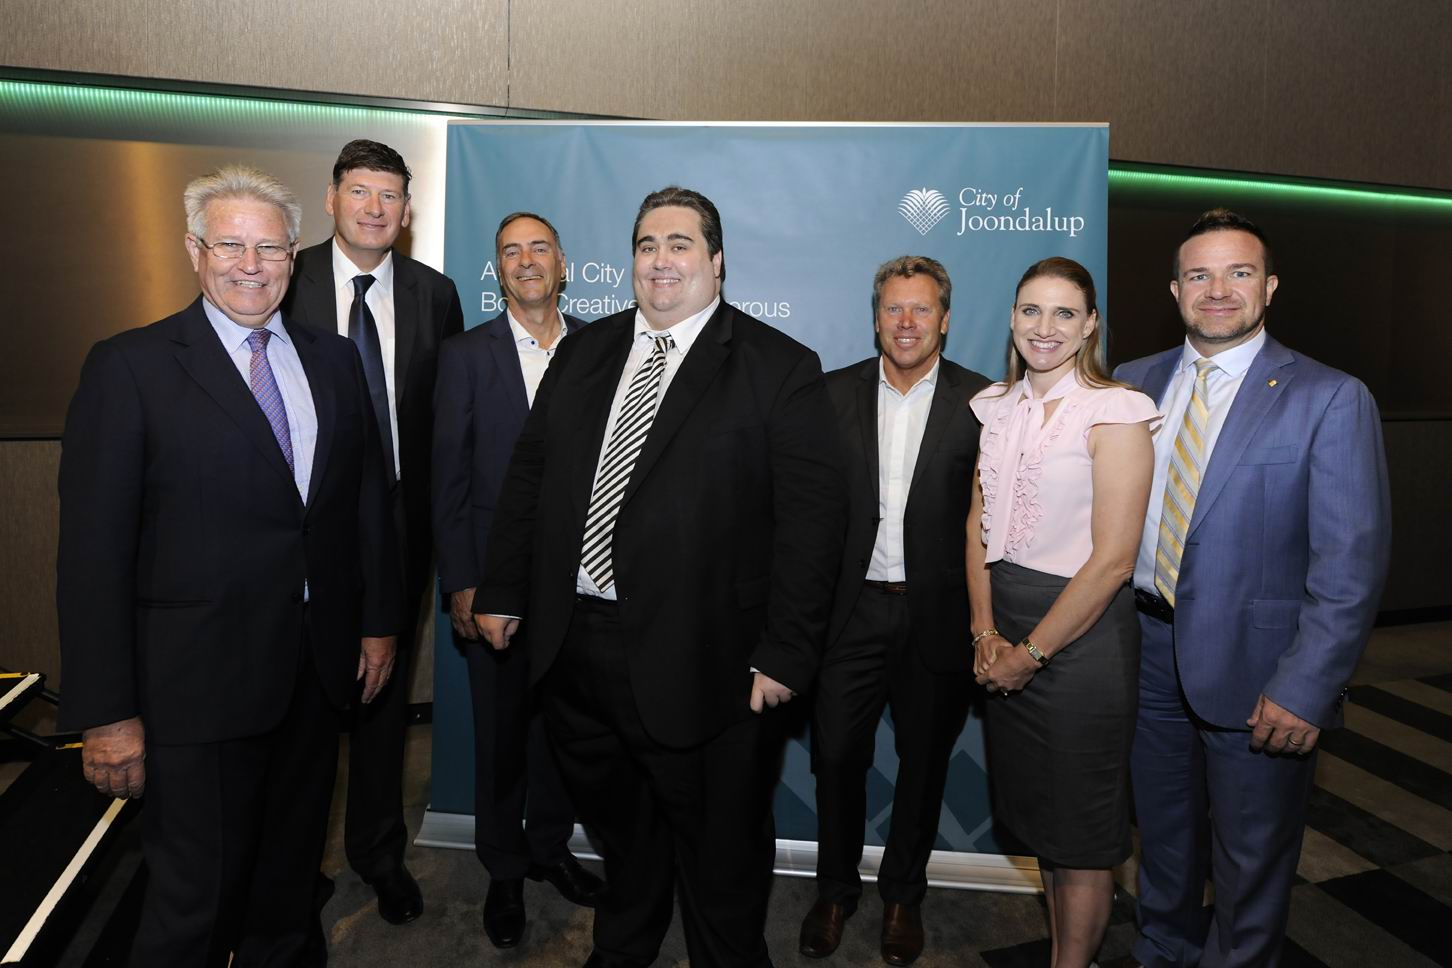 Joondalup CEO Garry Hunt, LandCorp metropolitan and industrial general manager John Hackett, Primewest director David Schwartz, Y-Research principal and chief problem solver Damian Stone, property analyst and commentator Gavin Hegney, Lakeside Joondalup Shopping City centre manager Gemma Hannigan and Joondalup Mayor Troy Pickard. Picture: Chris Kershaw